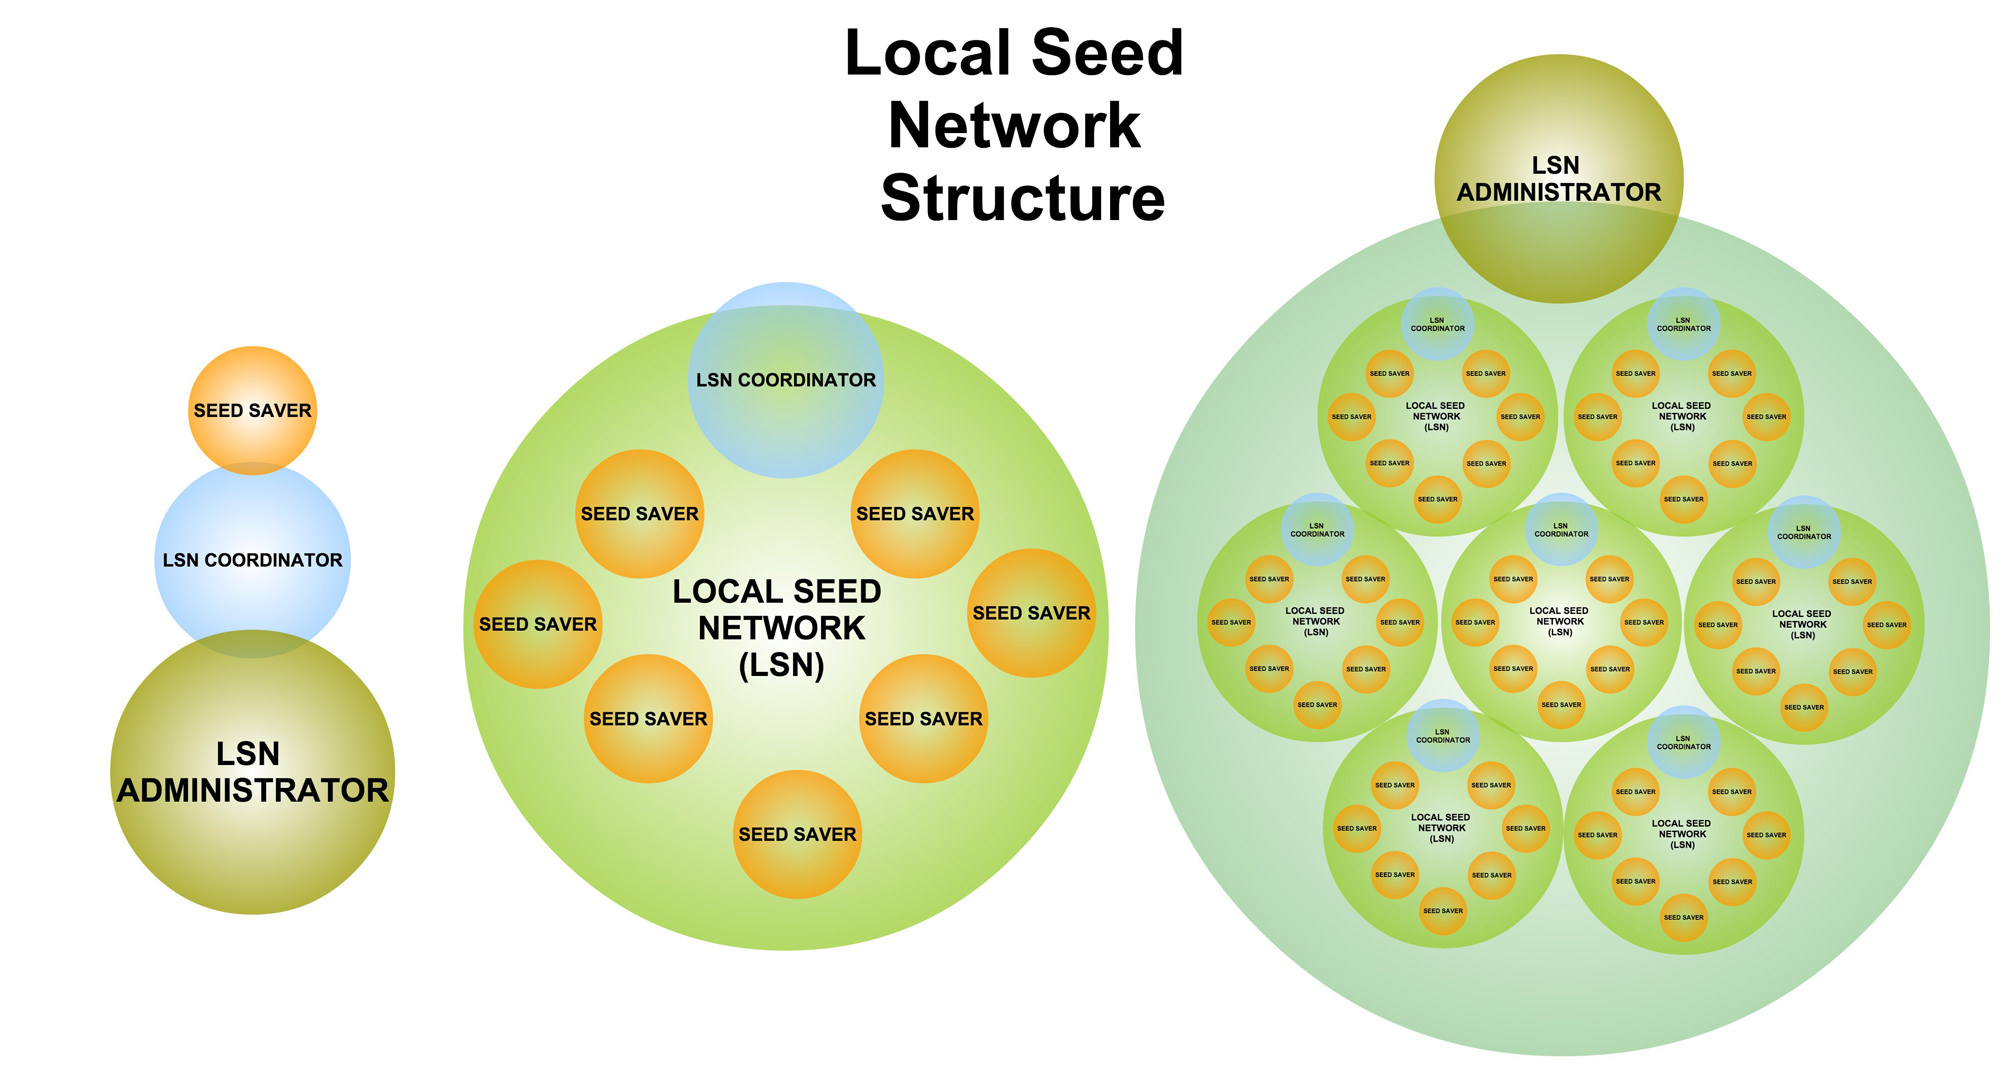 Local Seed Network Structure Diagram